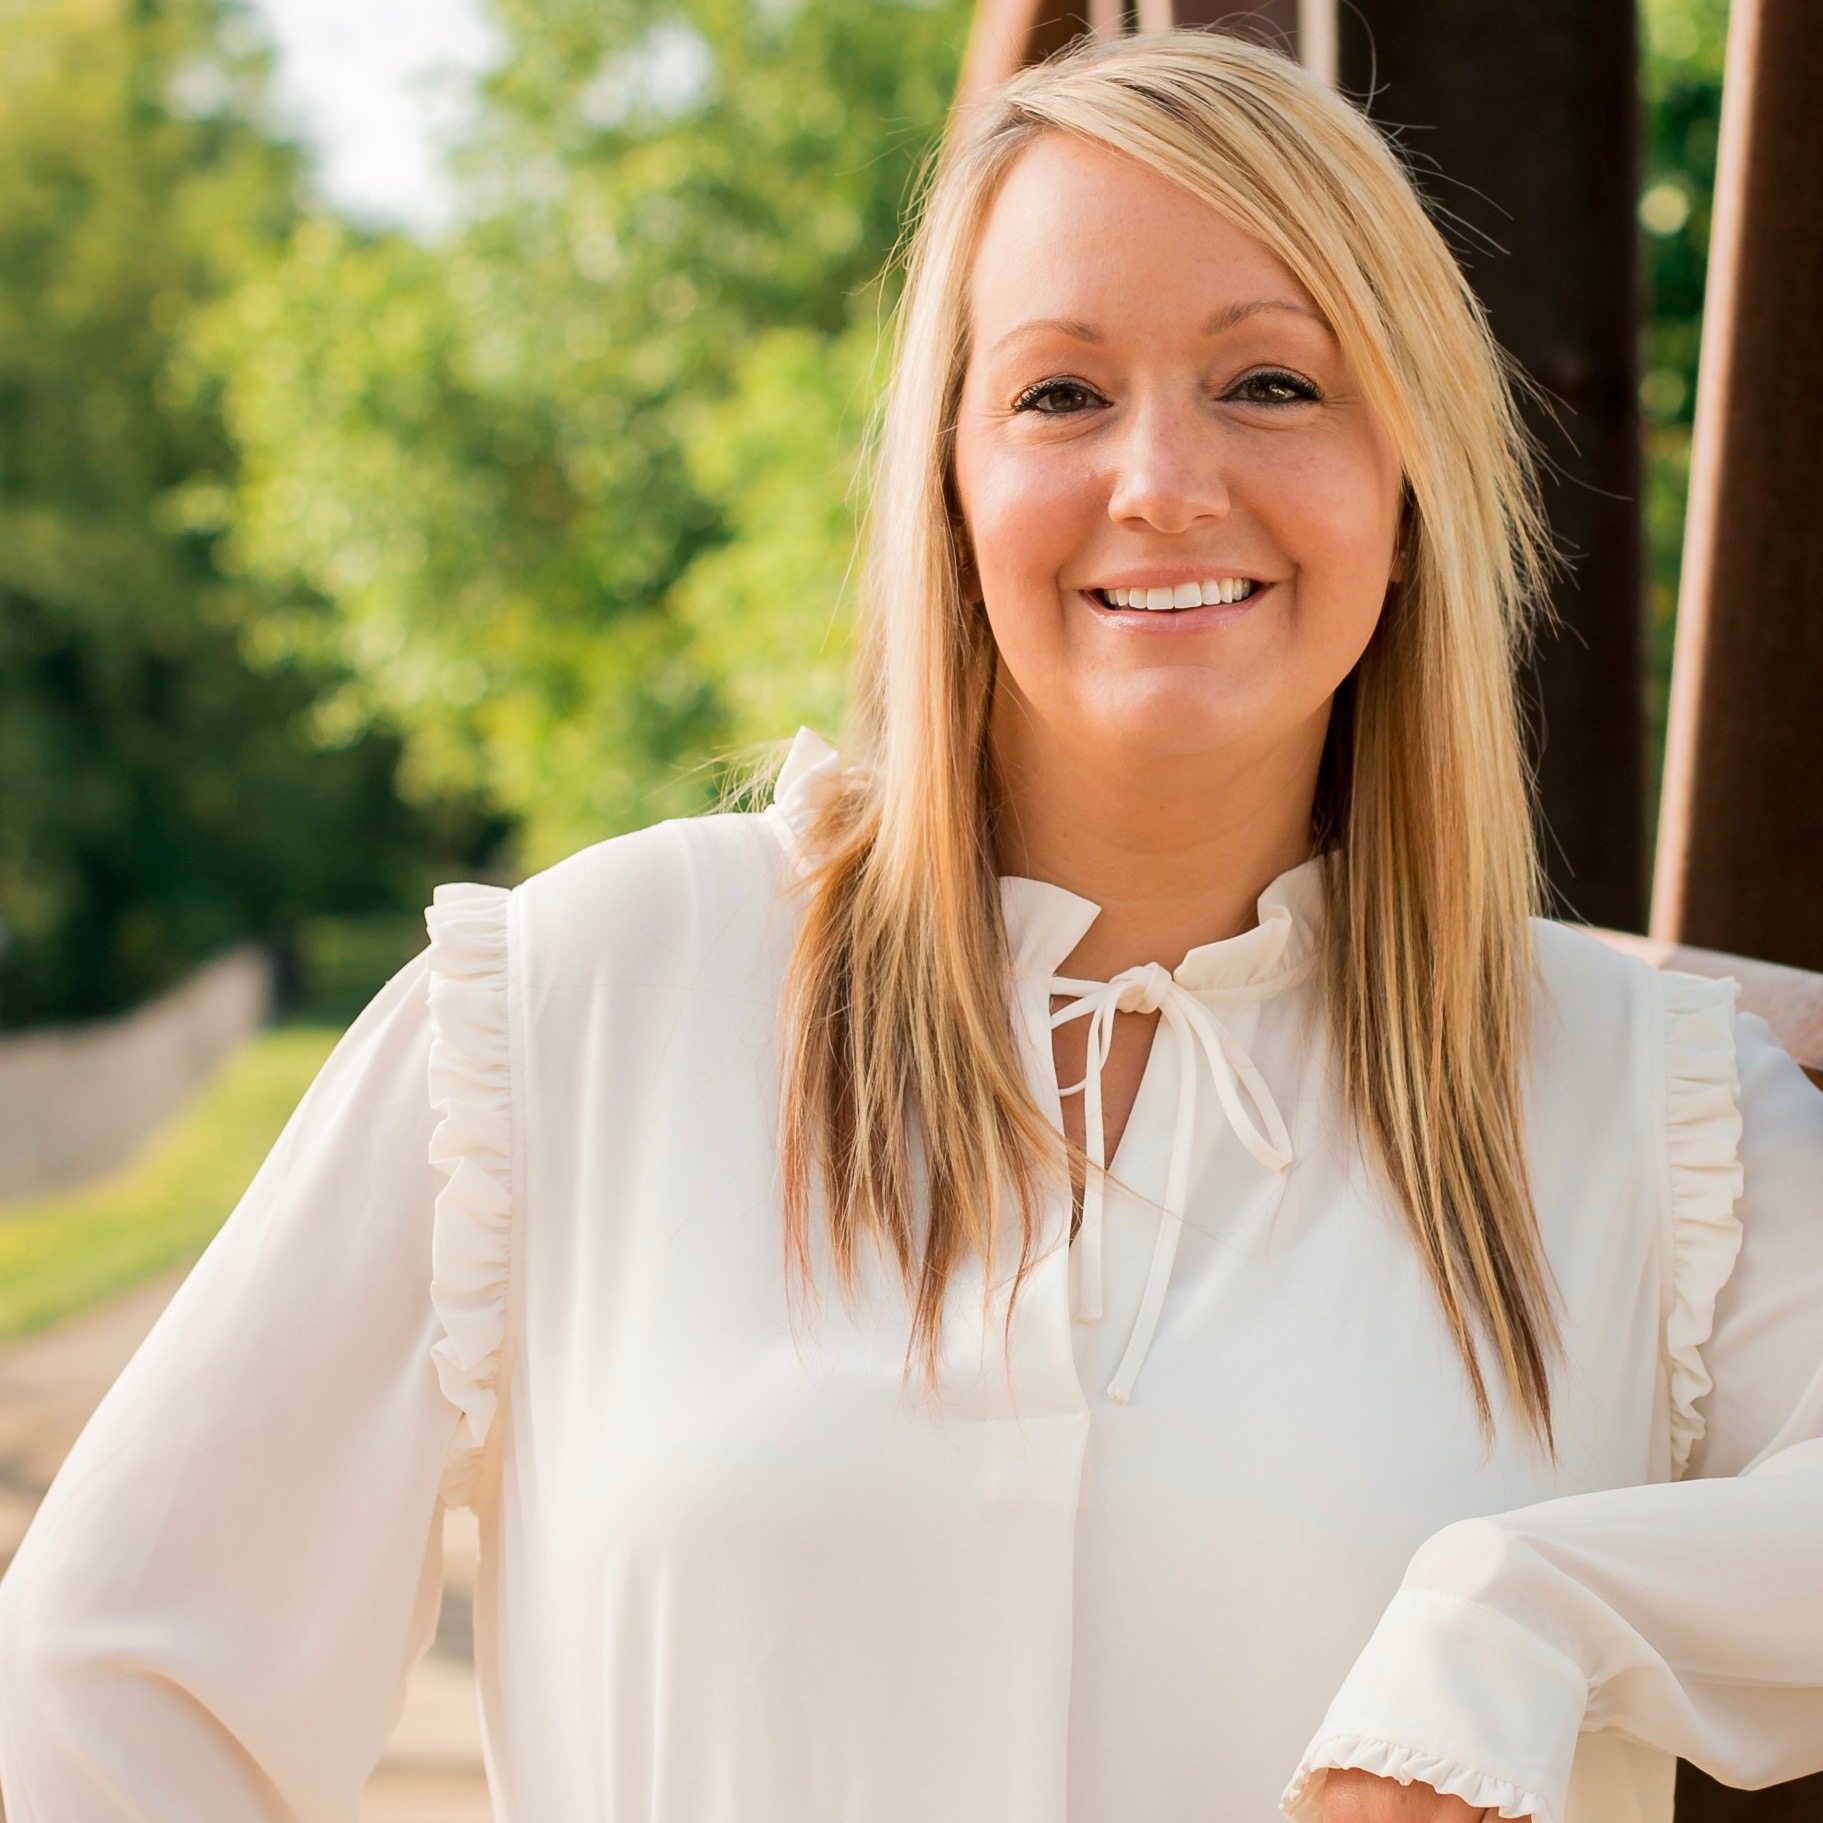 """JESSICA   Jessica has been in the orthodontic field since 2001. She began as a clinical assistant and is now a treatment coordinator. """"It's so amazing,"""" says Jessica, """"to see lives change through a smile. I am so blessed to be part of such an incredible milestone in people's lives. I love what I do, the people I work with at Griffin & Errera, and the many people we serve!"""" Jessica enjoys travel, hot yoga, spin, and most of all, being at home with her husband, son and fur babies."""